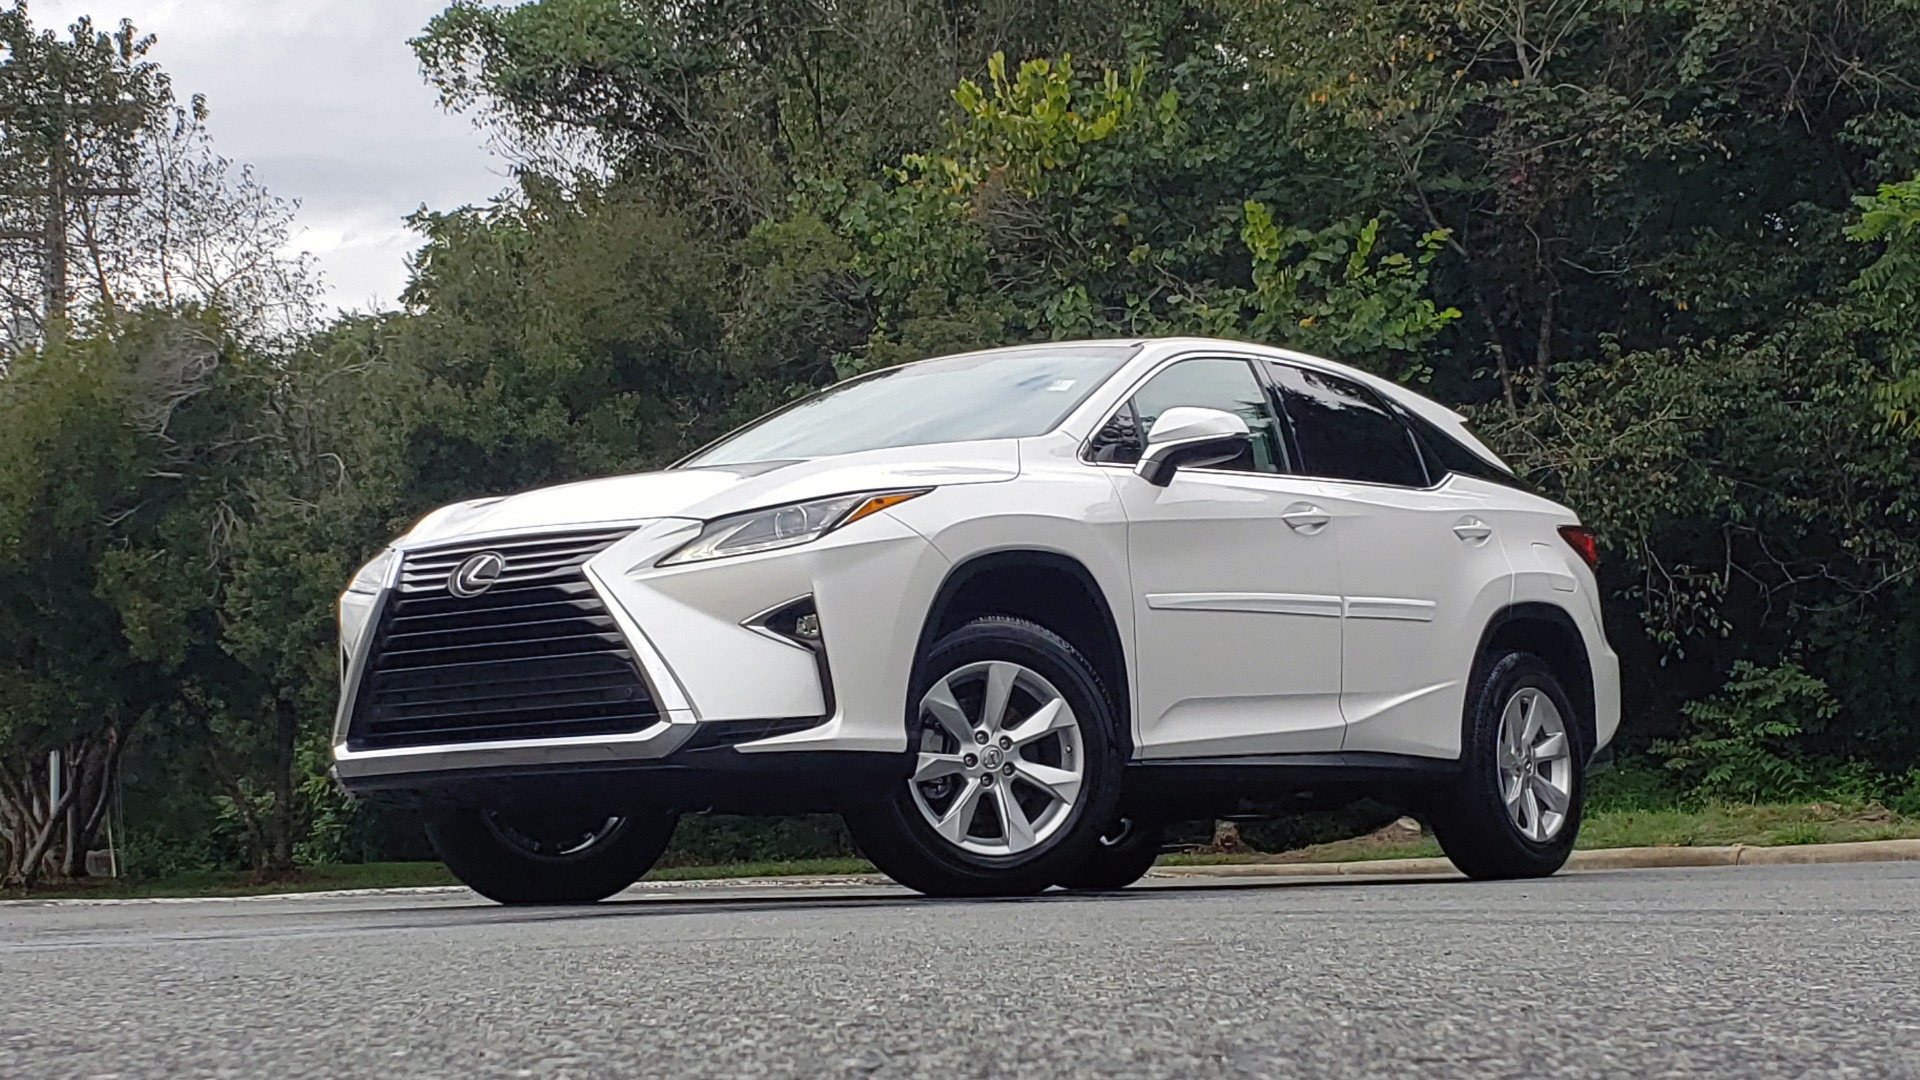 Used 2016 Lexus RX 350 FWD / 4-DR / 3.5L V6 / 8-SPD AUTO / LEATHER / REARVIEW for sale Sold at Formula Imports in Charlotte NC 28227 2